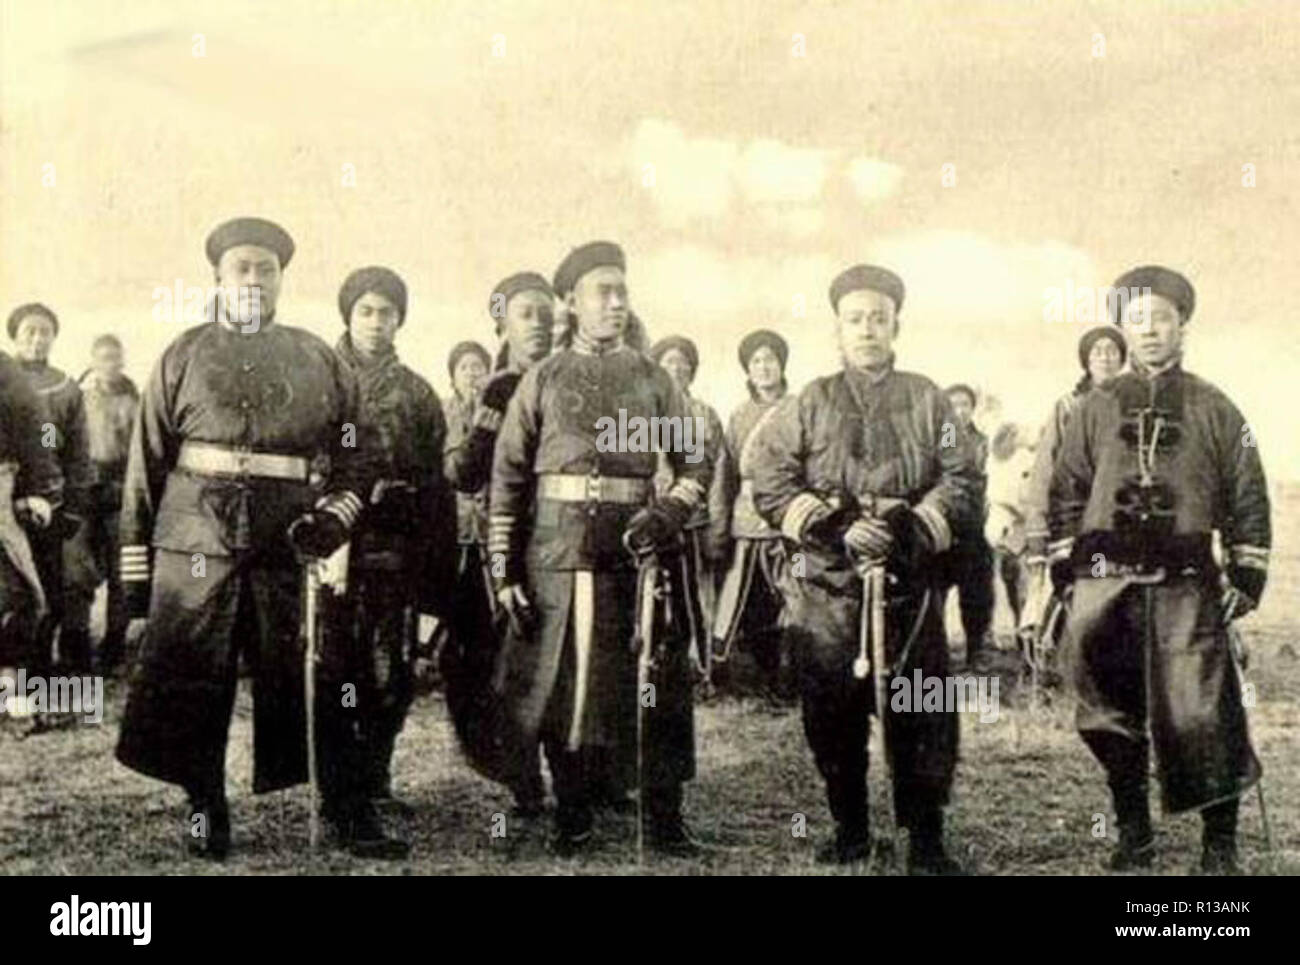 Qing imperial soldiers during the Boxer Rebellion - Stock Image